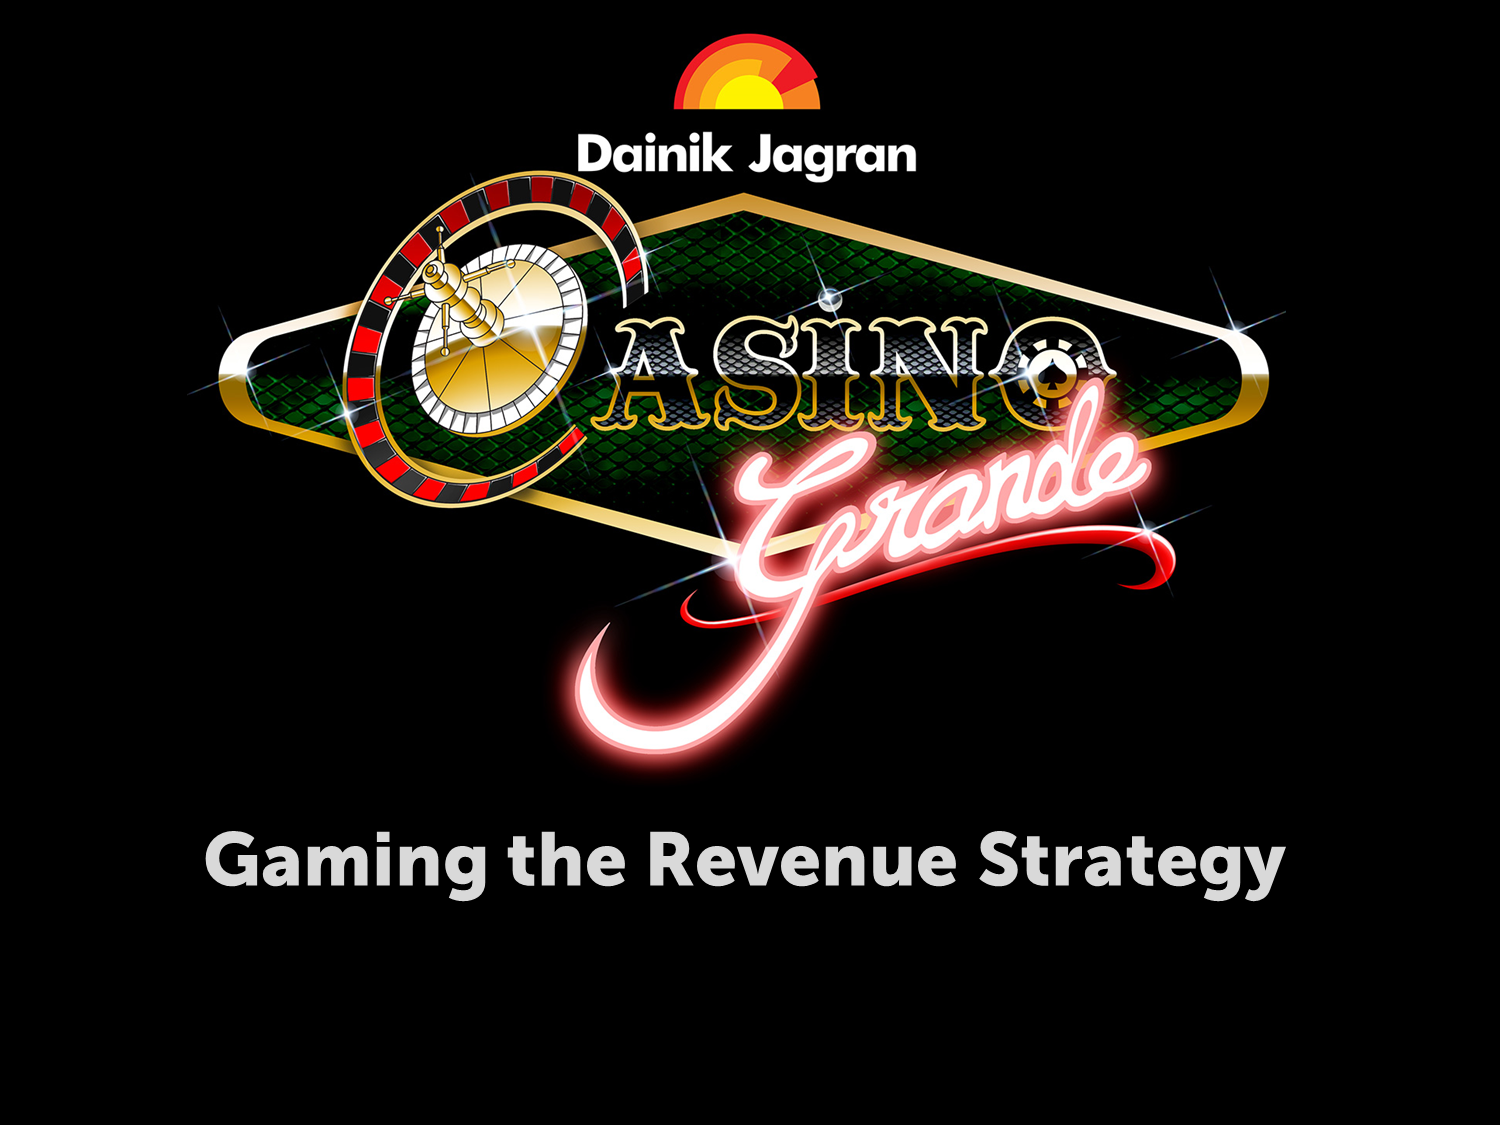 GAMING THE REVENUE STRATEGY